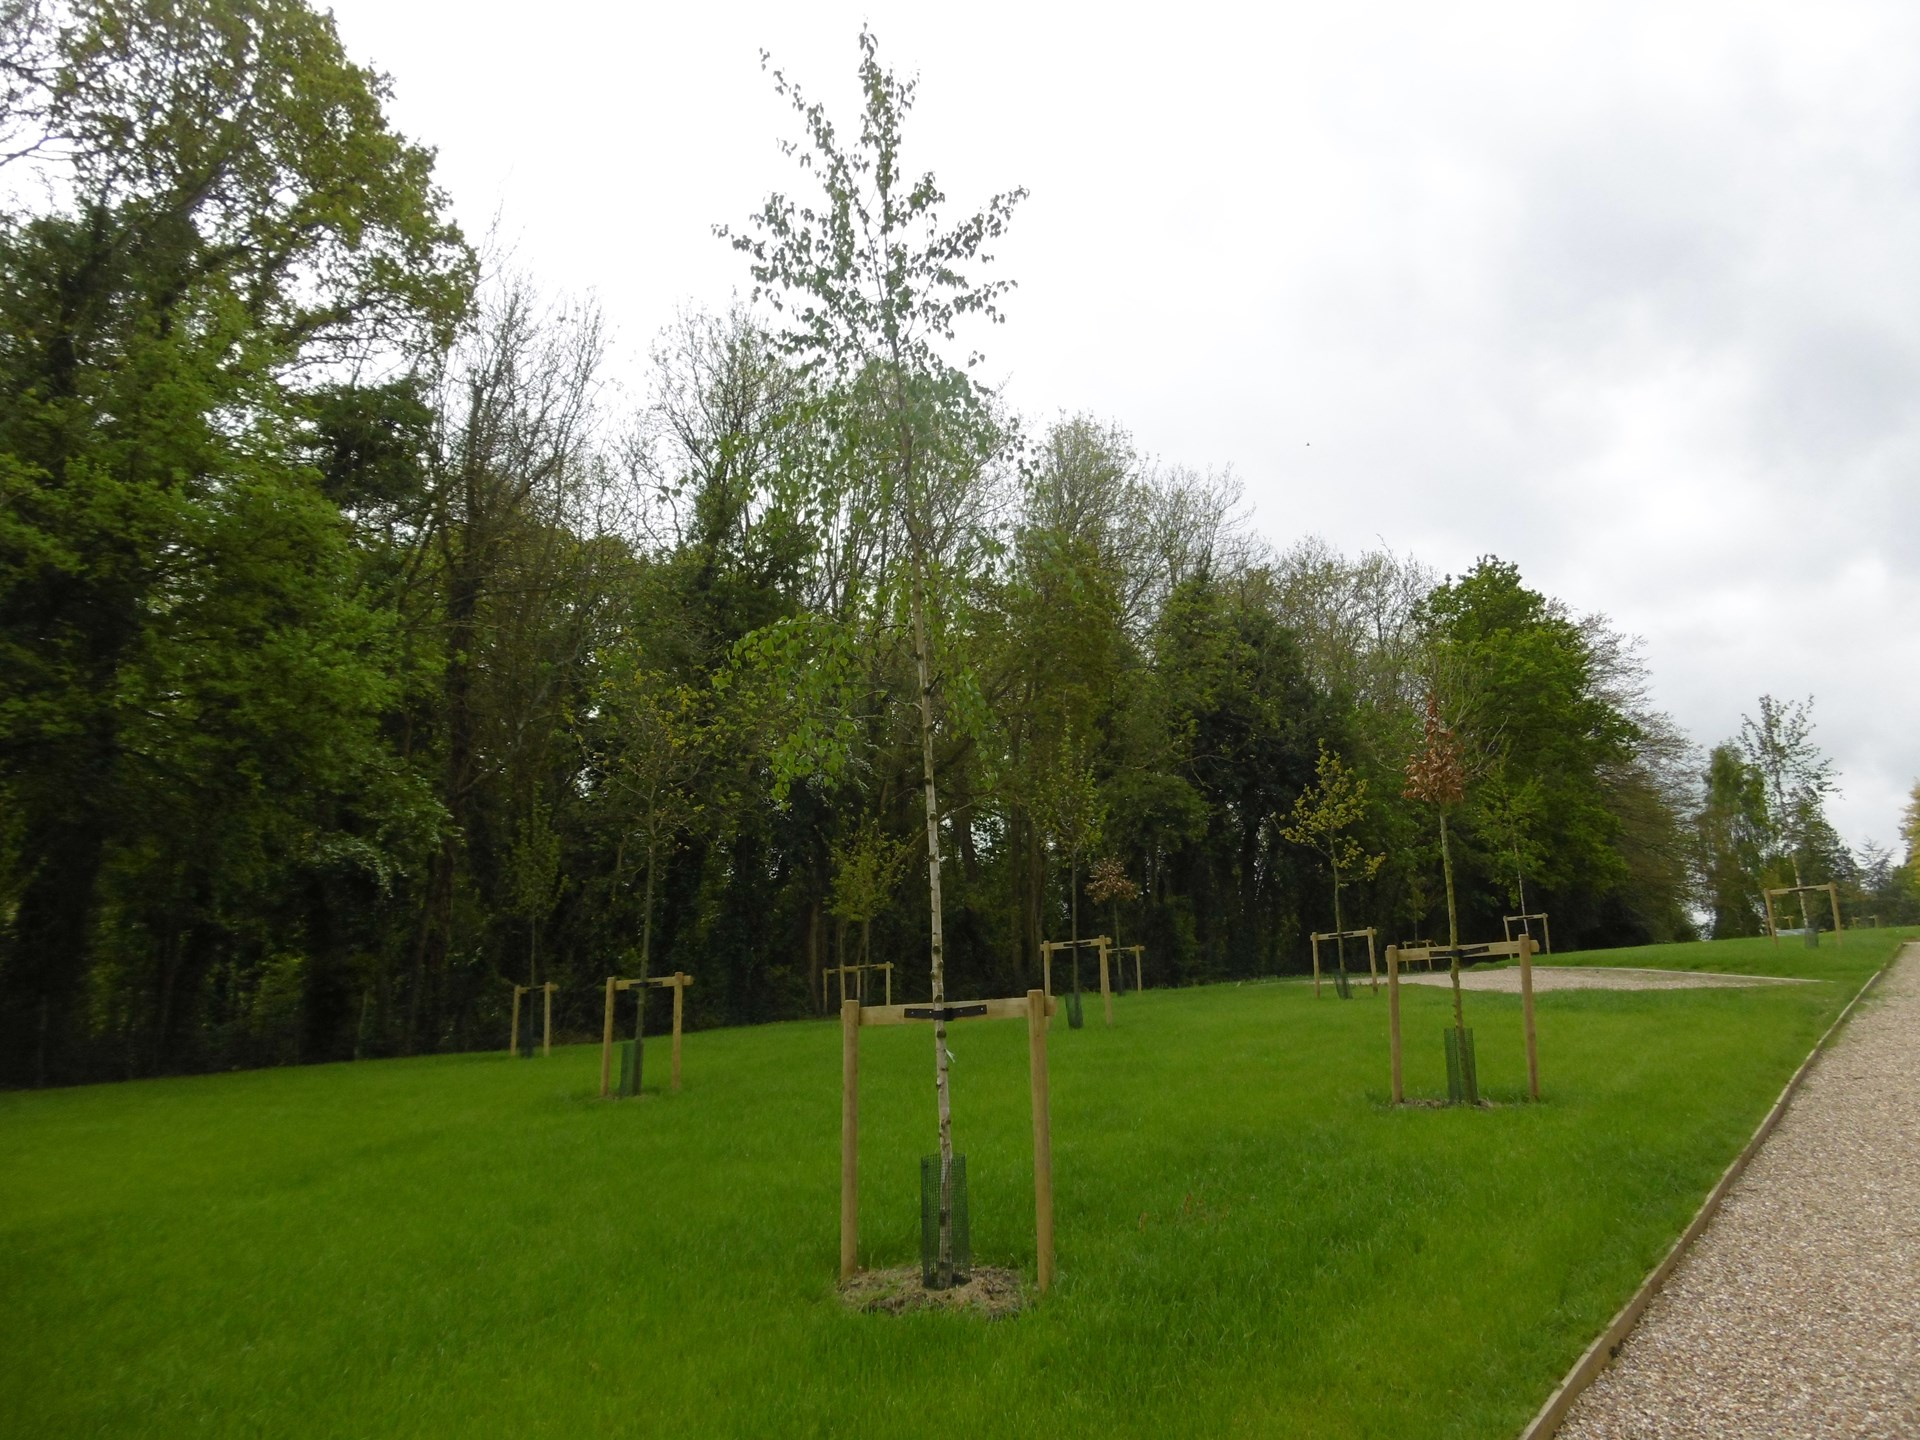 Ashes plots in the Natural Burial Area will be arranged around the trees